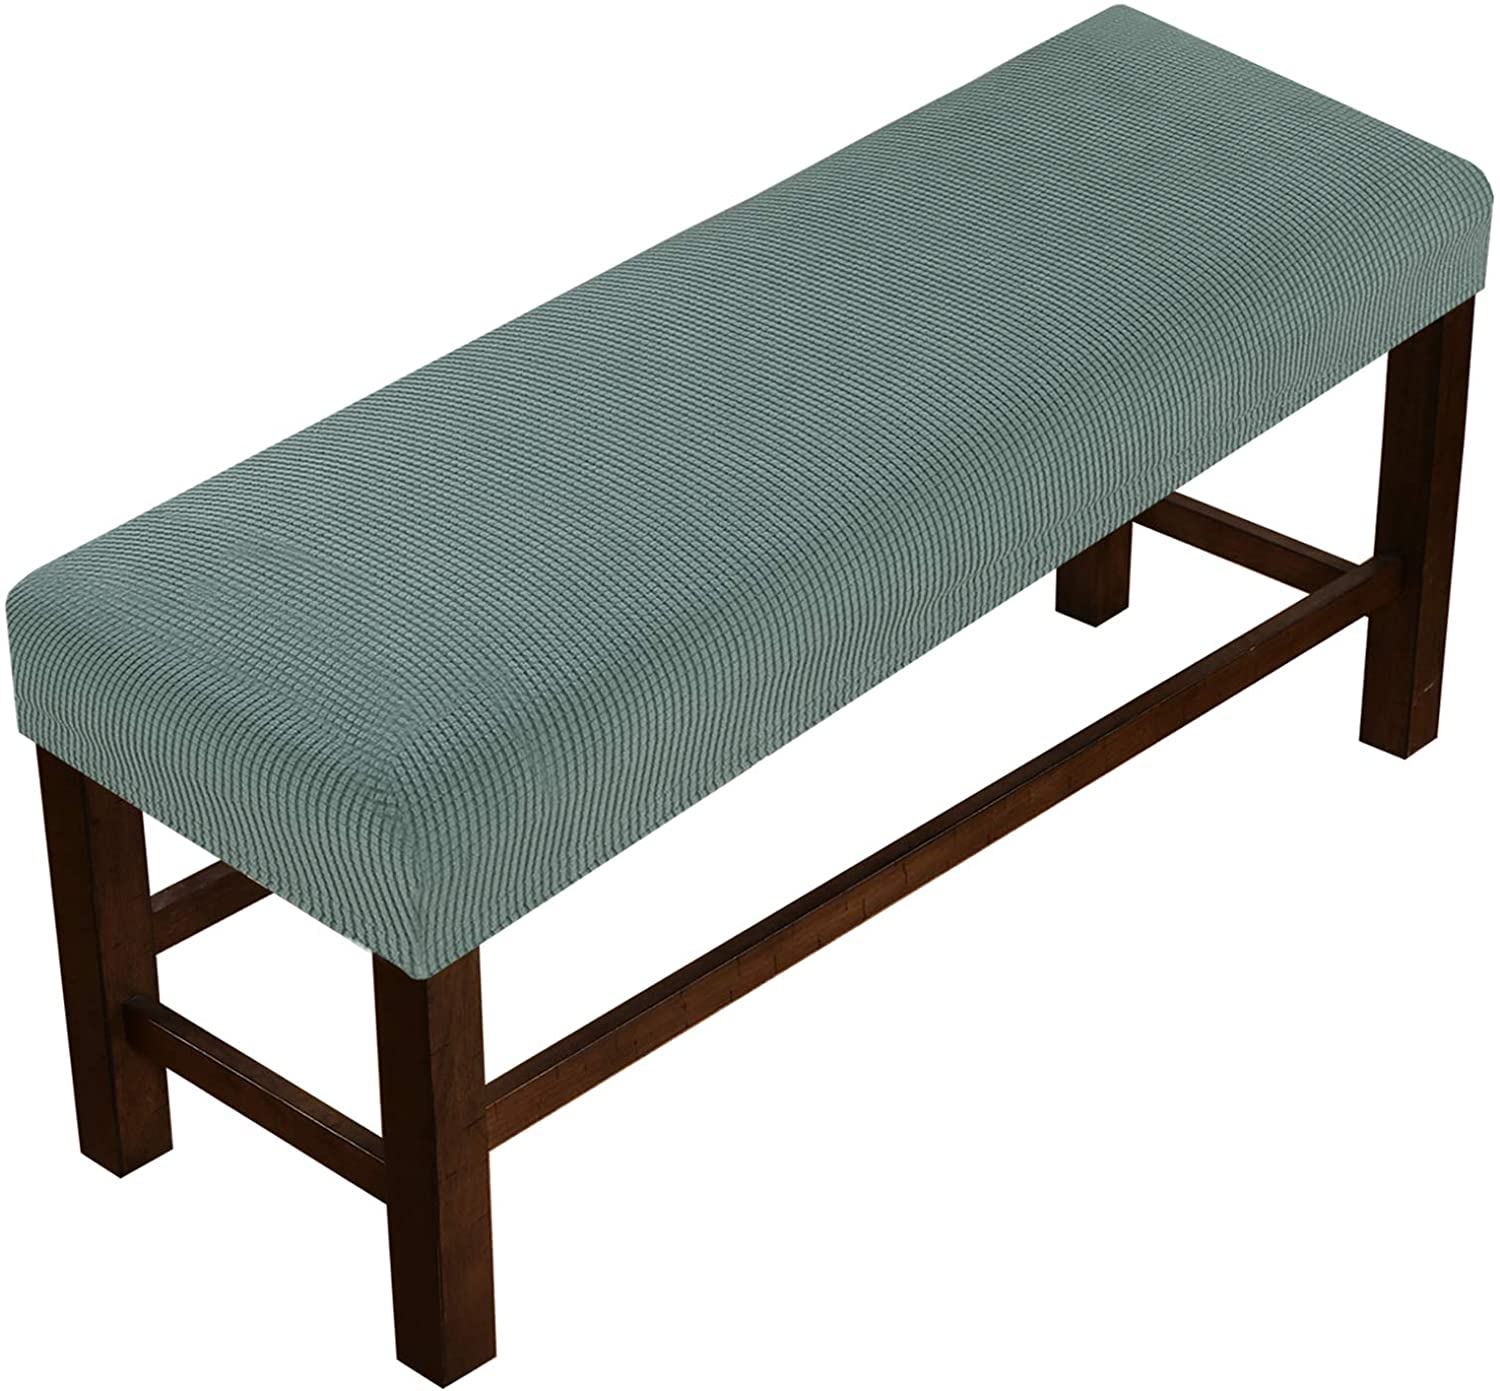 Bench Covers High Stretch Bench Slipcover Rectangle for Dining Room Bench Cushion Covers Indoor Bench Cushion Slipcovers Thicker Jacquard Non Slip with Security Straps (Medium - Sage)